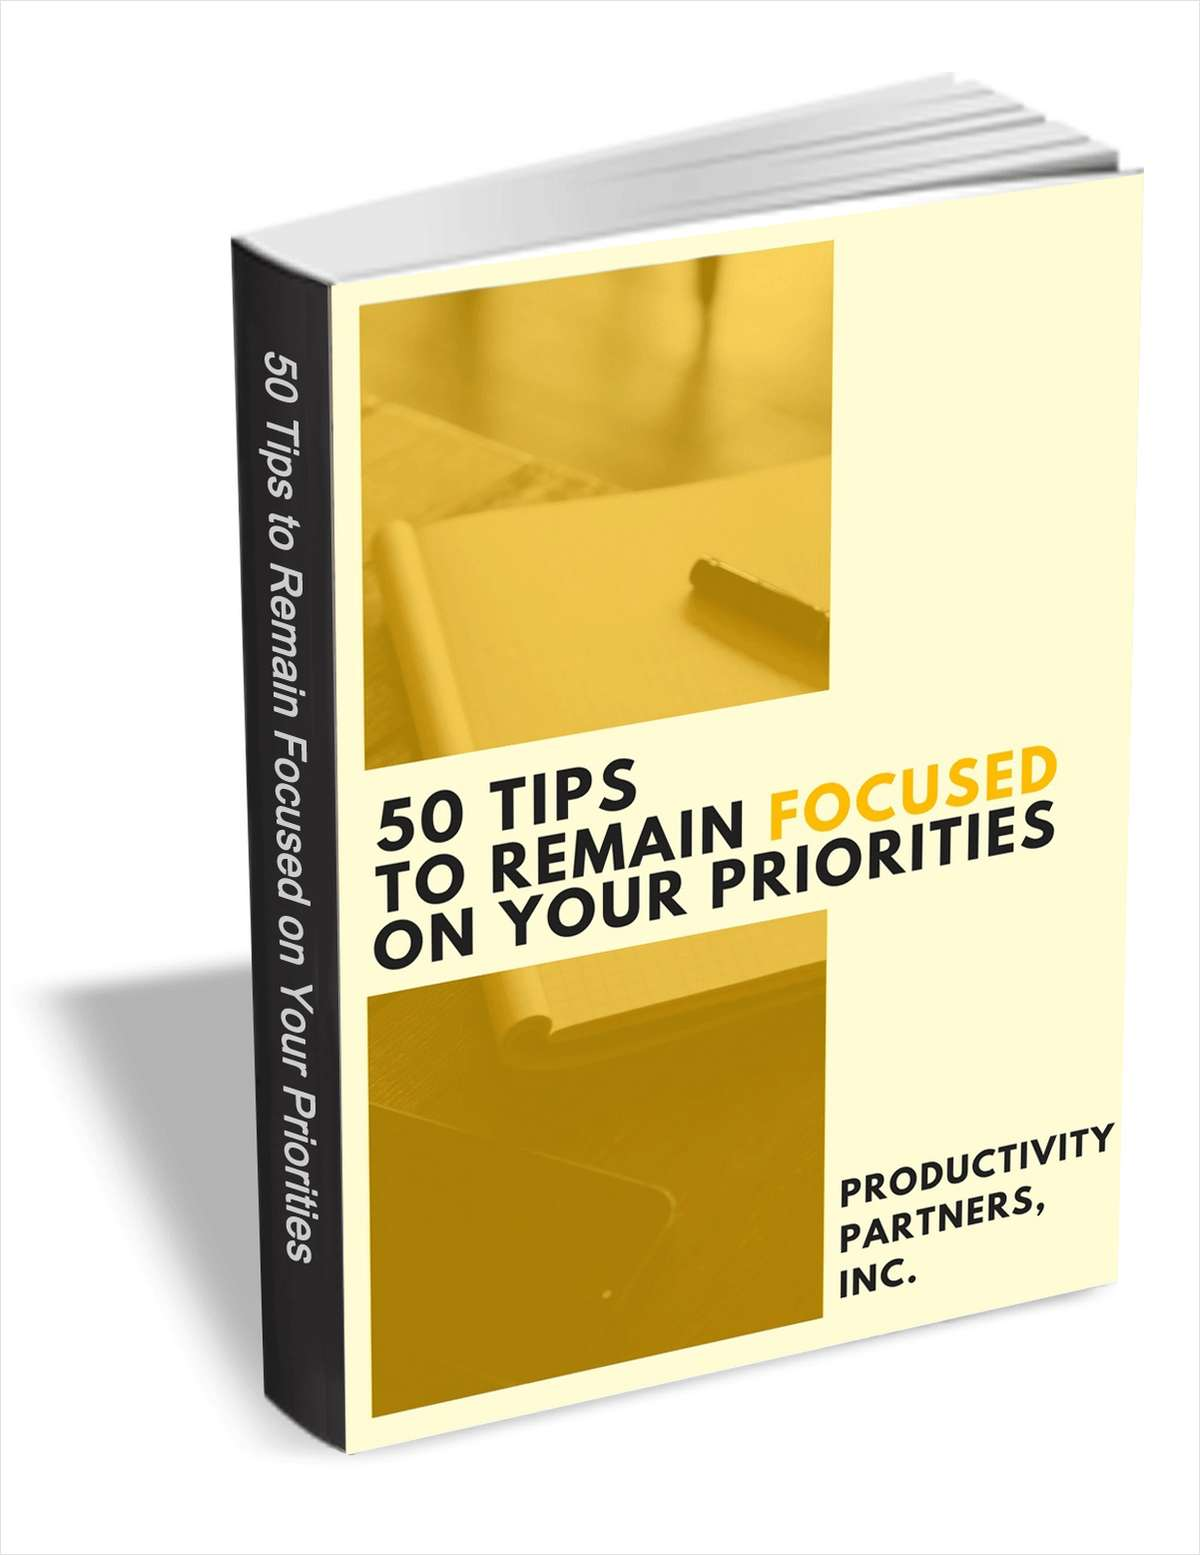 50 Tips to Remain Focused on Your Priorities